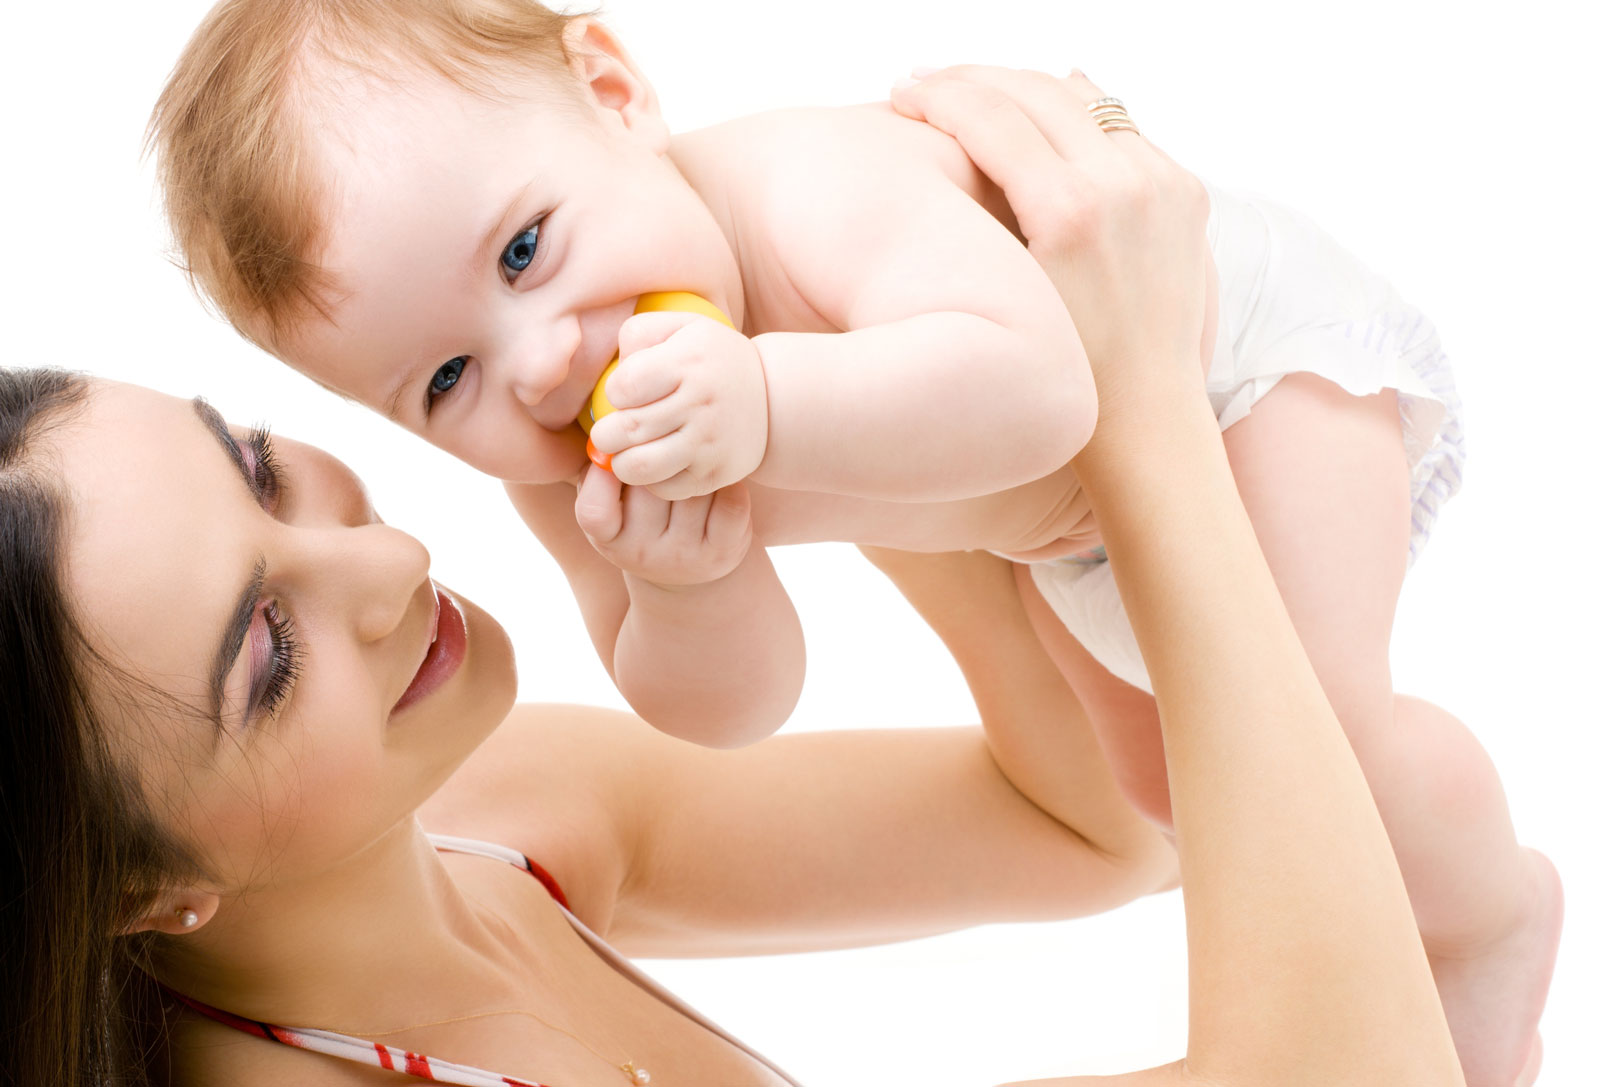 Mom and Baby Playing | Baby Teething Toys: What They Are & Which Ones To Buy